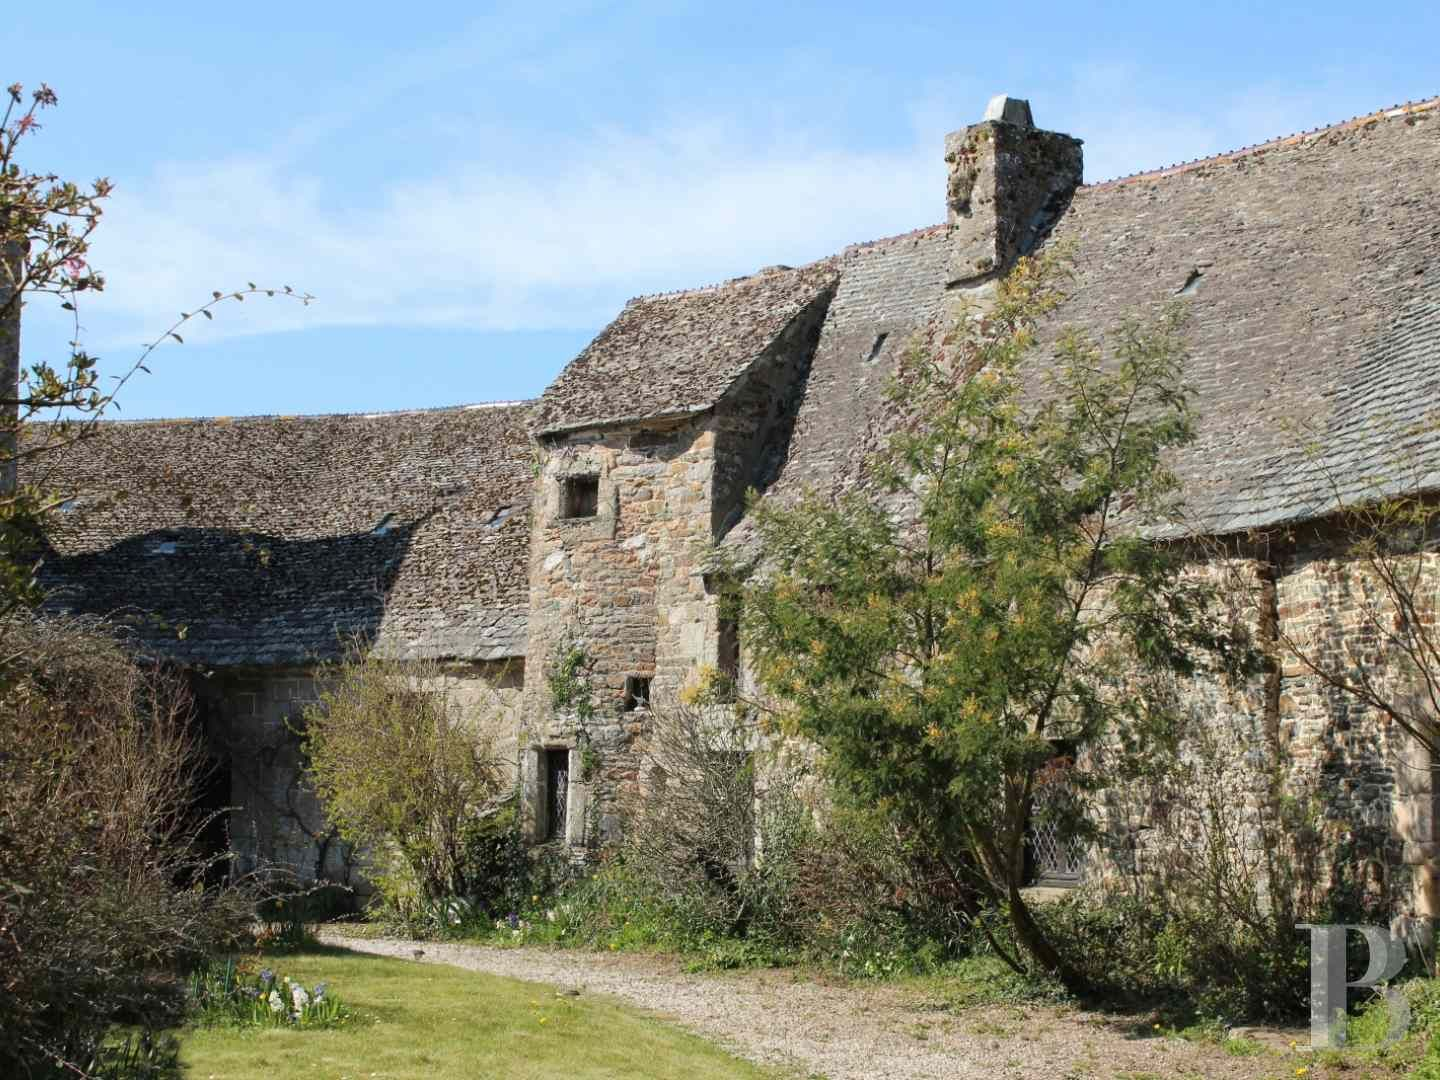 https://www.patrice-besse.co.uk/France-mansions-for-sale/lower-normandy/contentin-peninsula-17th/